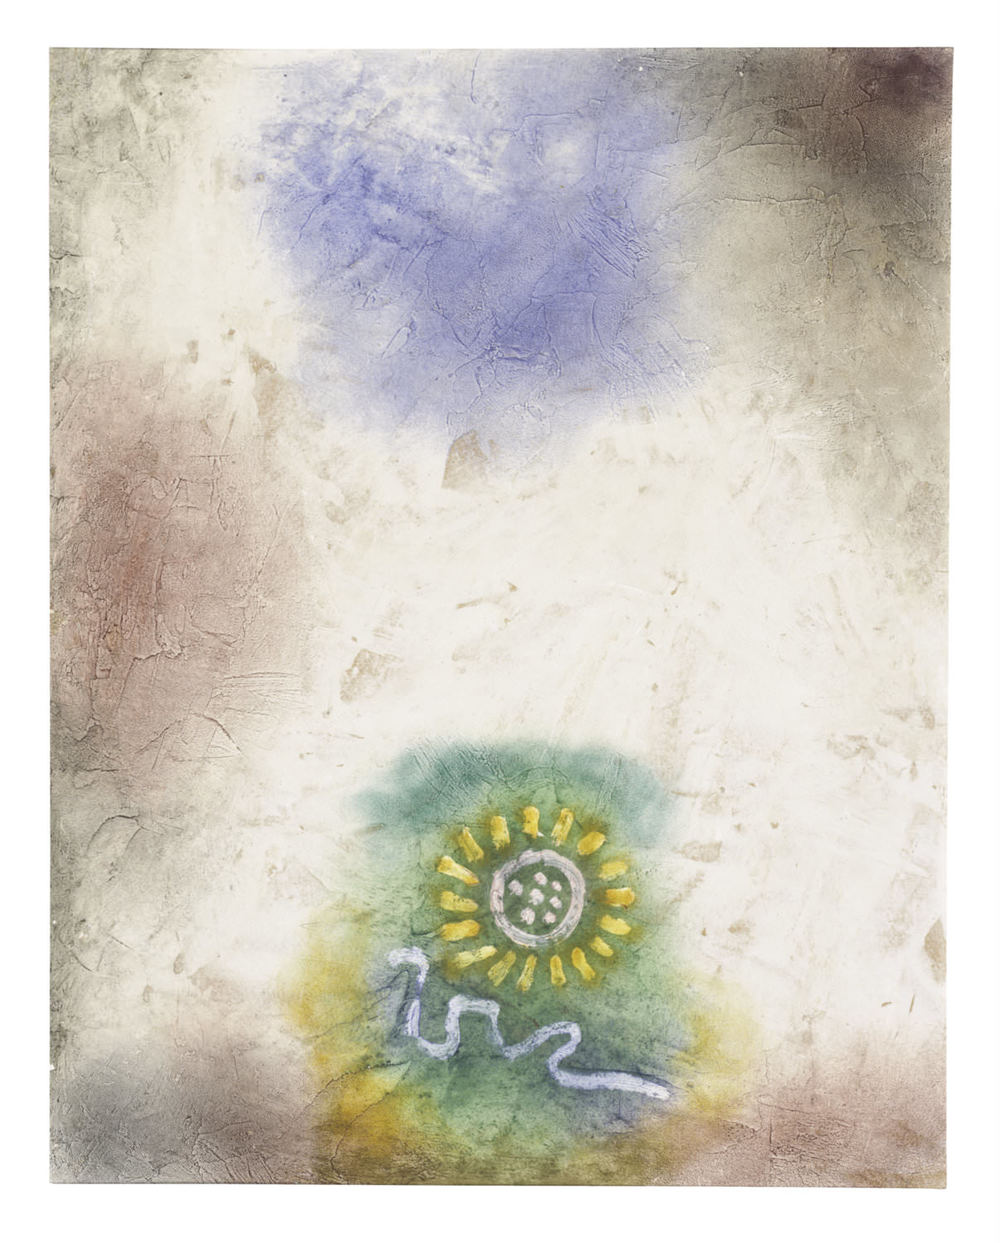 Paul Klee Ohne Titel ( Blume und Schlange ) [Rückseite von  Kind und Drache ], um 1940 Rückseite, Untitled ( Flower and Snake ), watercolour and coloured paste on primed cardboard, 33,5 x 42,5 cm, Zentrum Paul Klee, Bern, Schenkung Livia Klee © Zentrum Paul Klee, Bern, Bildarchiv